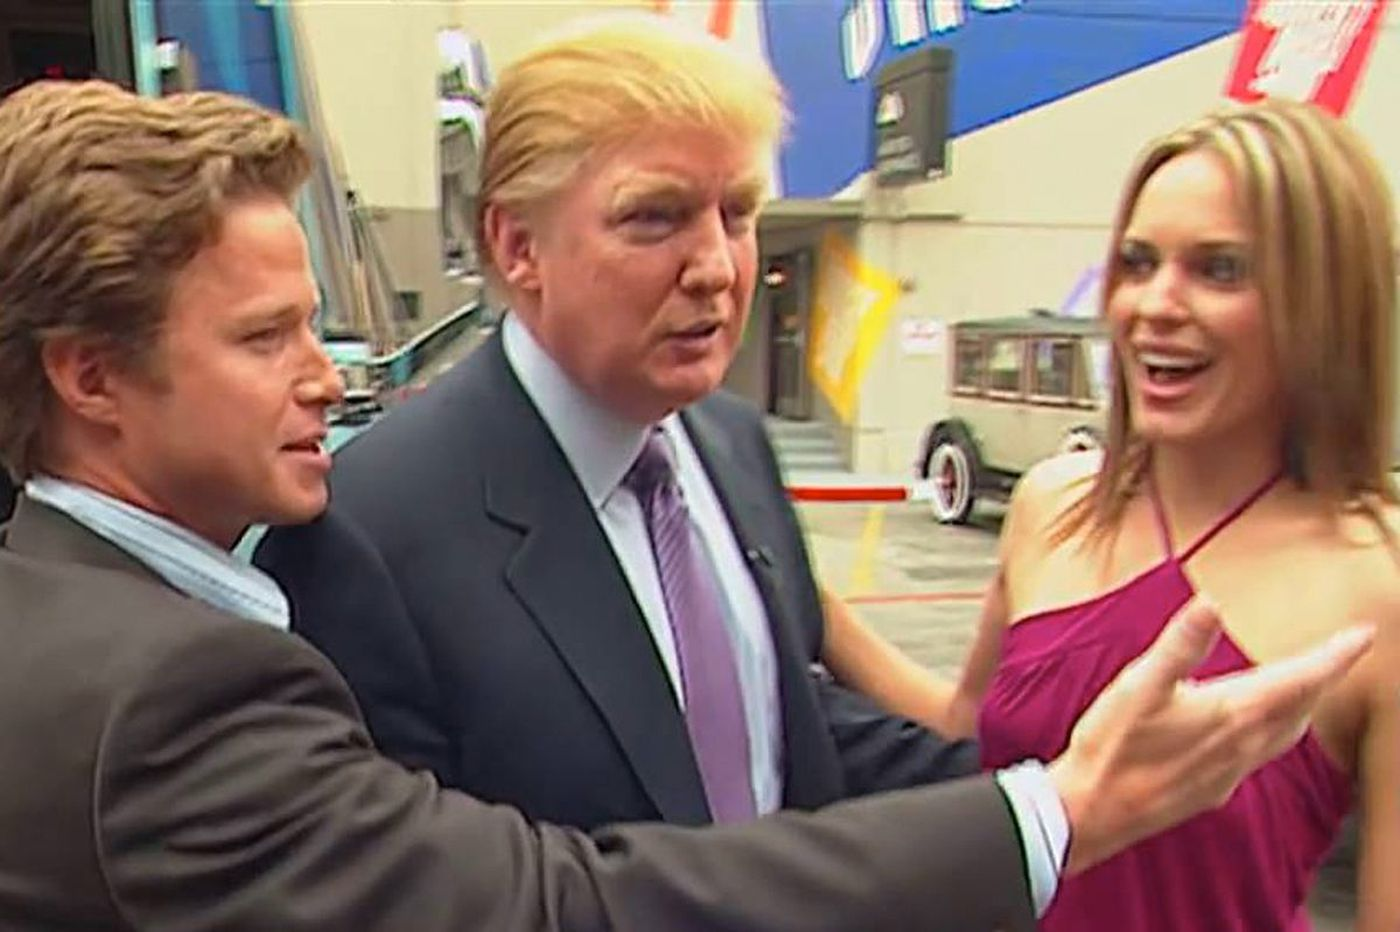 'Access Hollywood' fires back at Trump: 'The tape is very real'